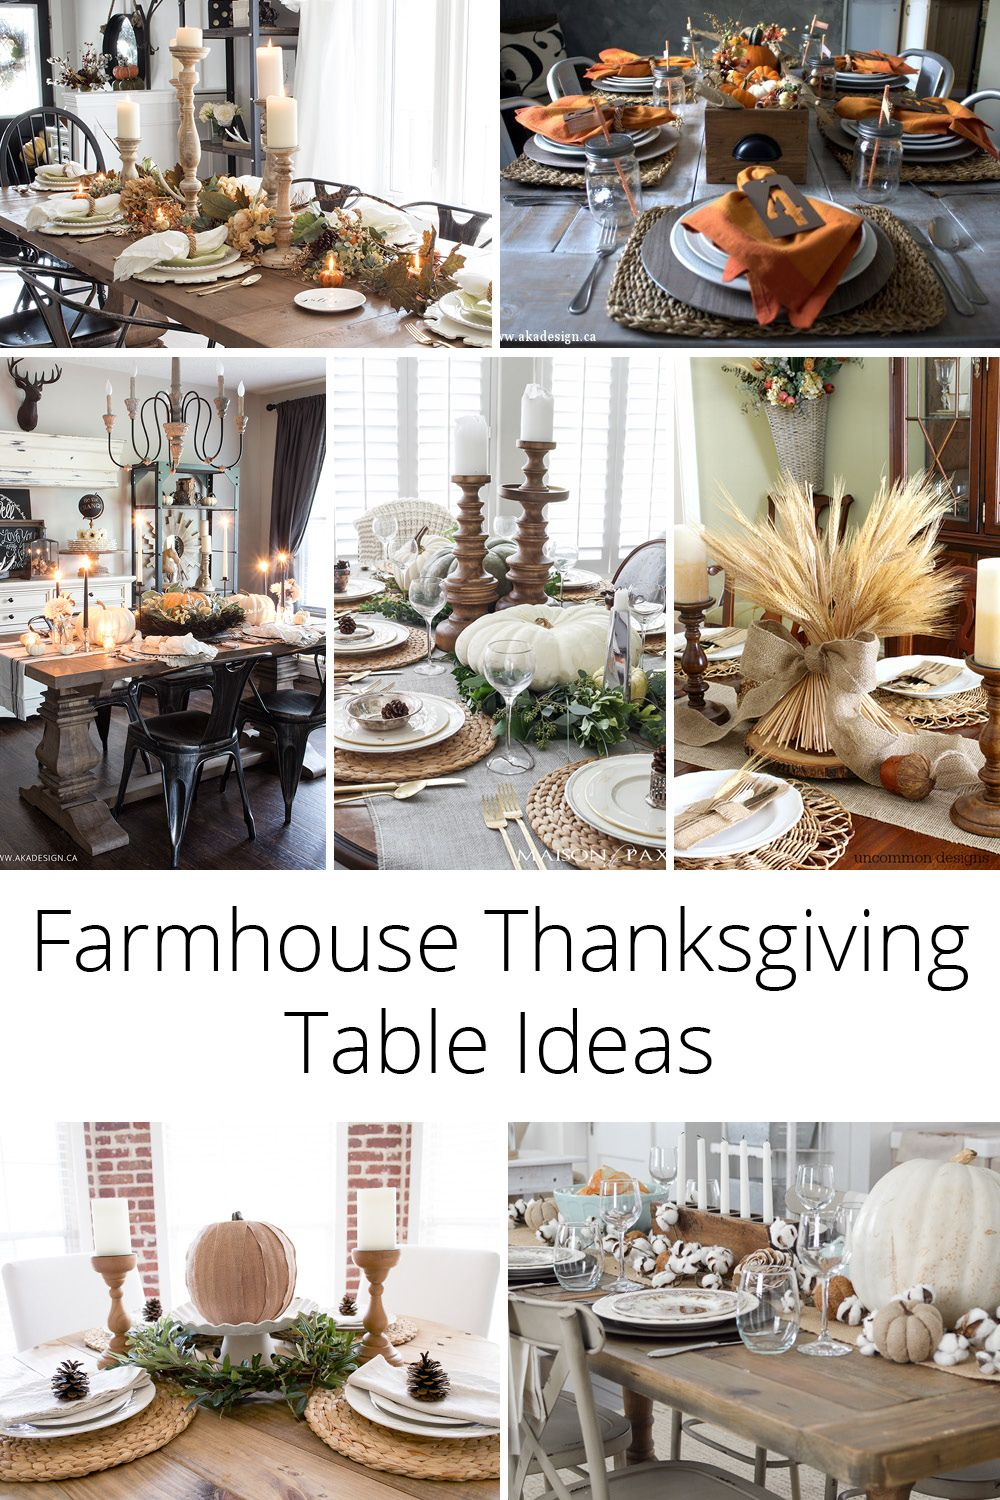 13 Farmhouse Thanksgiving Table Ideas To Help You Decorate Yours Thanksgiving Table Decor Fall Home Decor